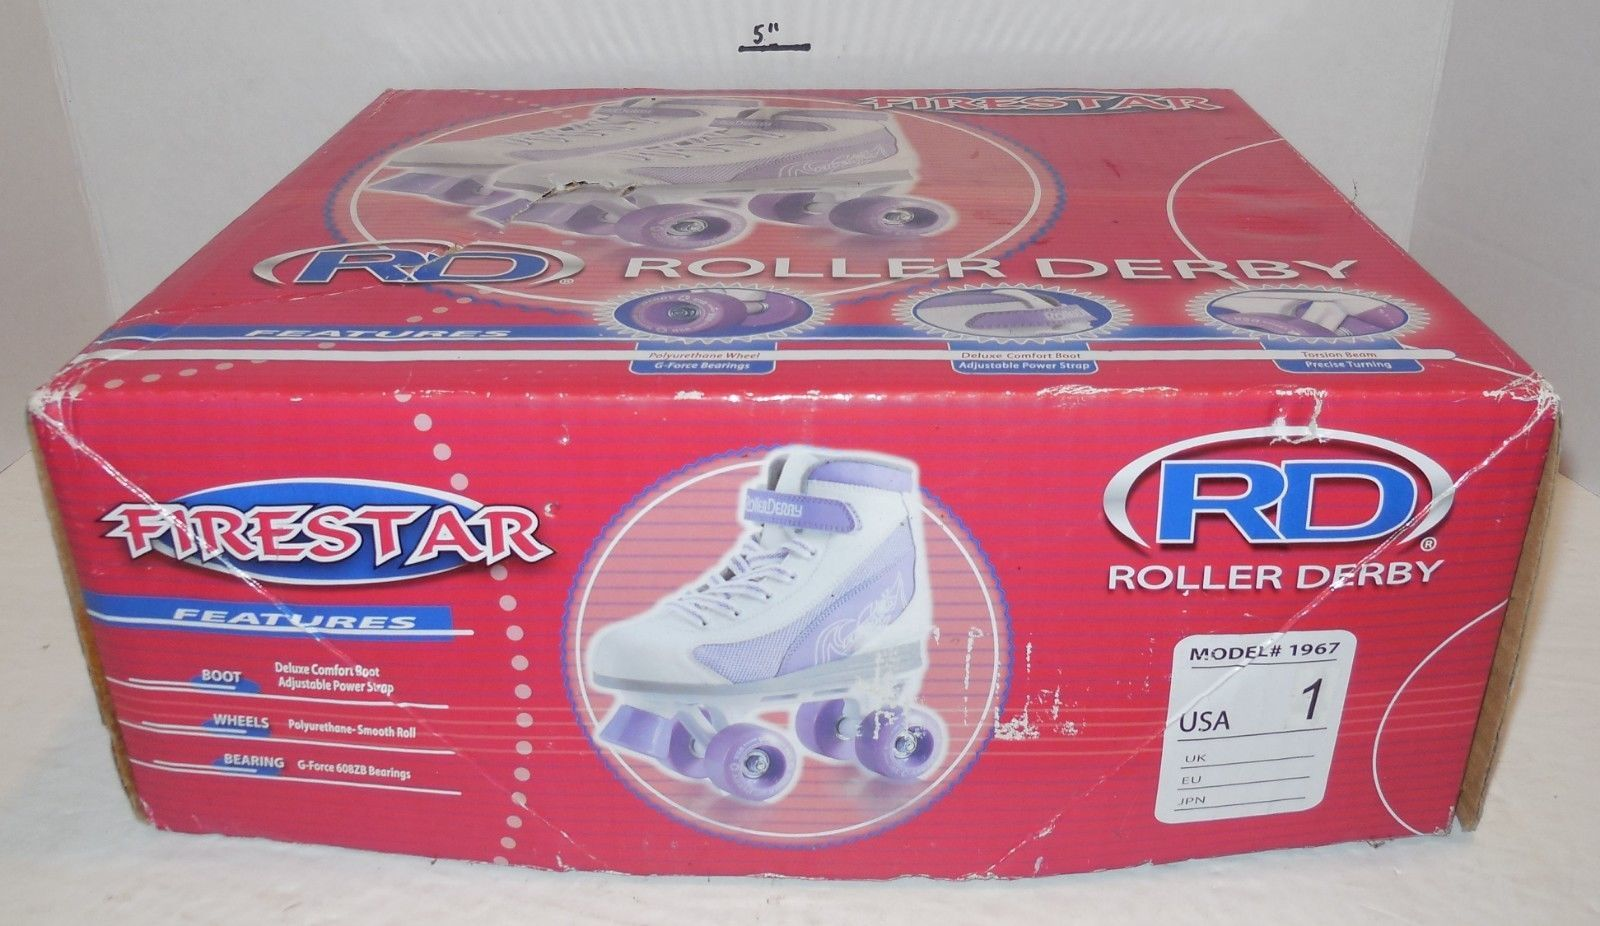 Primary image for Firestar Roller Derby Roller Skates Youth size 1 Purple White Model #1967